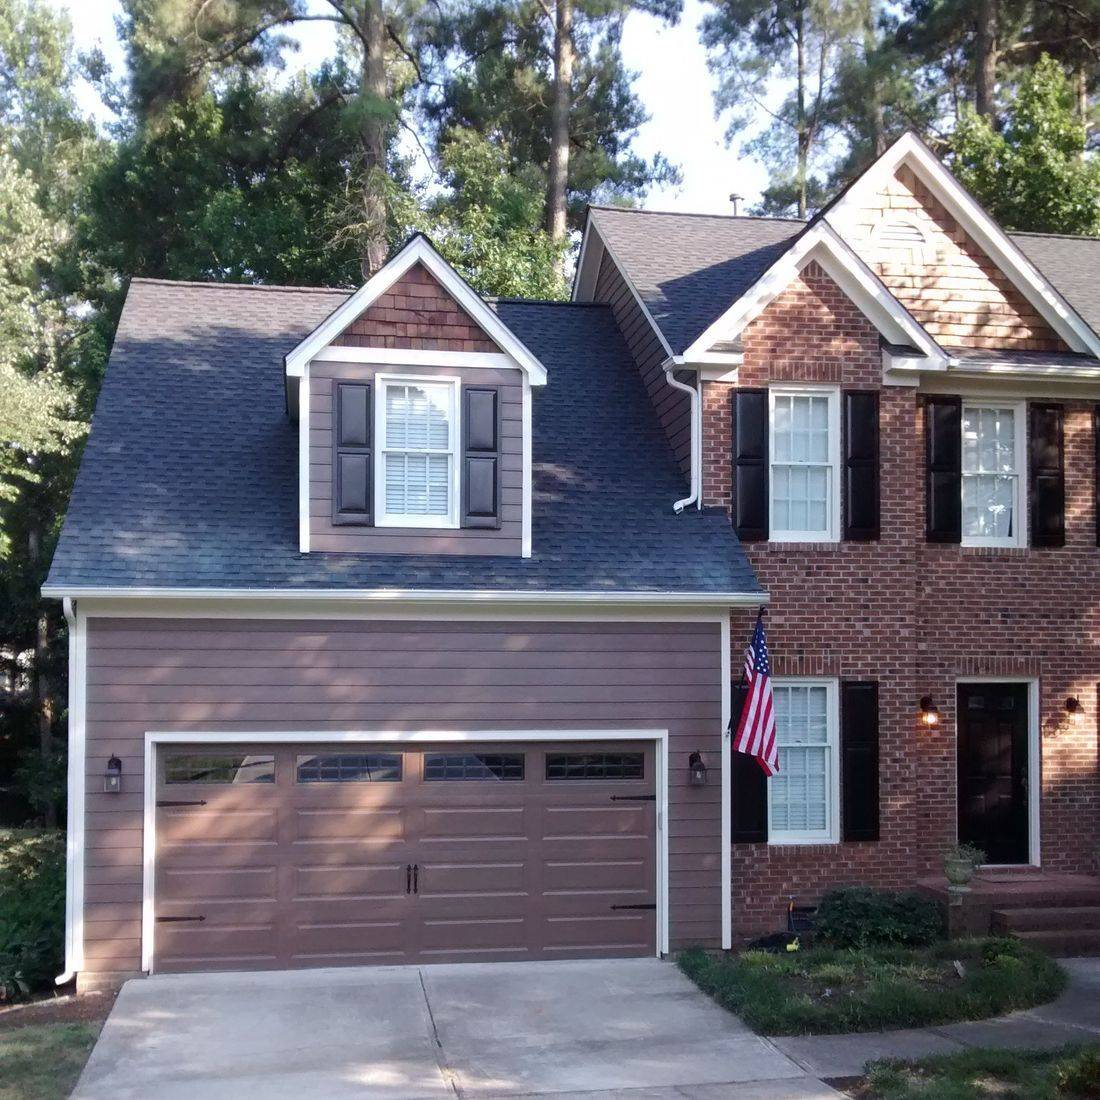 Triangle Area Painting exterior repaint in Cary North Carolina. house painter, interior painter, Triangle Area Painting, sherwin williams, house painting estimate painting a house, exterior house painting, exterior painting, painter, painting, painter, Holly Springs, Cary, Raleigh, Apex, Morrisville, Fuquay Varina, Durham, NC, house painting exterior, painting company   home painter Holly Springs, NC, Cary NC, house painter  Holly Springs, NC, Cary NC, interior painter  Holly Springs, NC , Cary NC, Triangle Area Painting  Holly Springs, NC , Cary NC, exterior house painting  Holly Springs, NC , Cary NC, exterior painting  Holly Springs, NC , Cary NC, house painting exterior  Holly Springs, NC , Cary NC, painting company  Holly Springs, NC , Cary NC,  painting house holly Springs NC, Cary NC